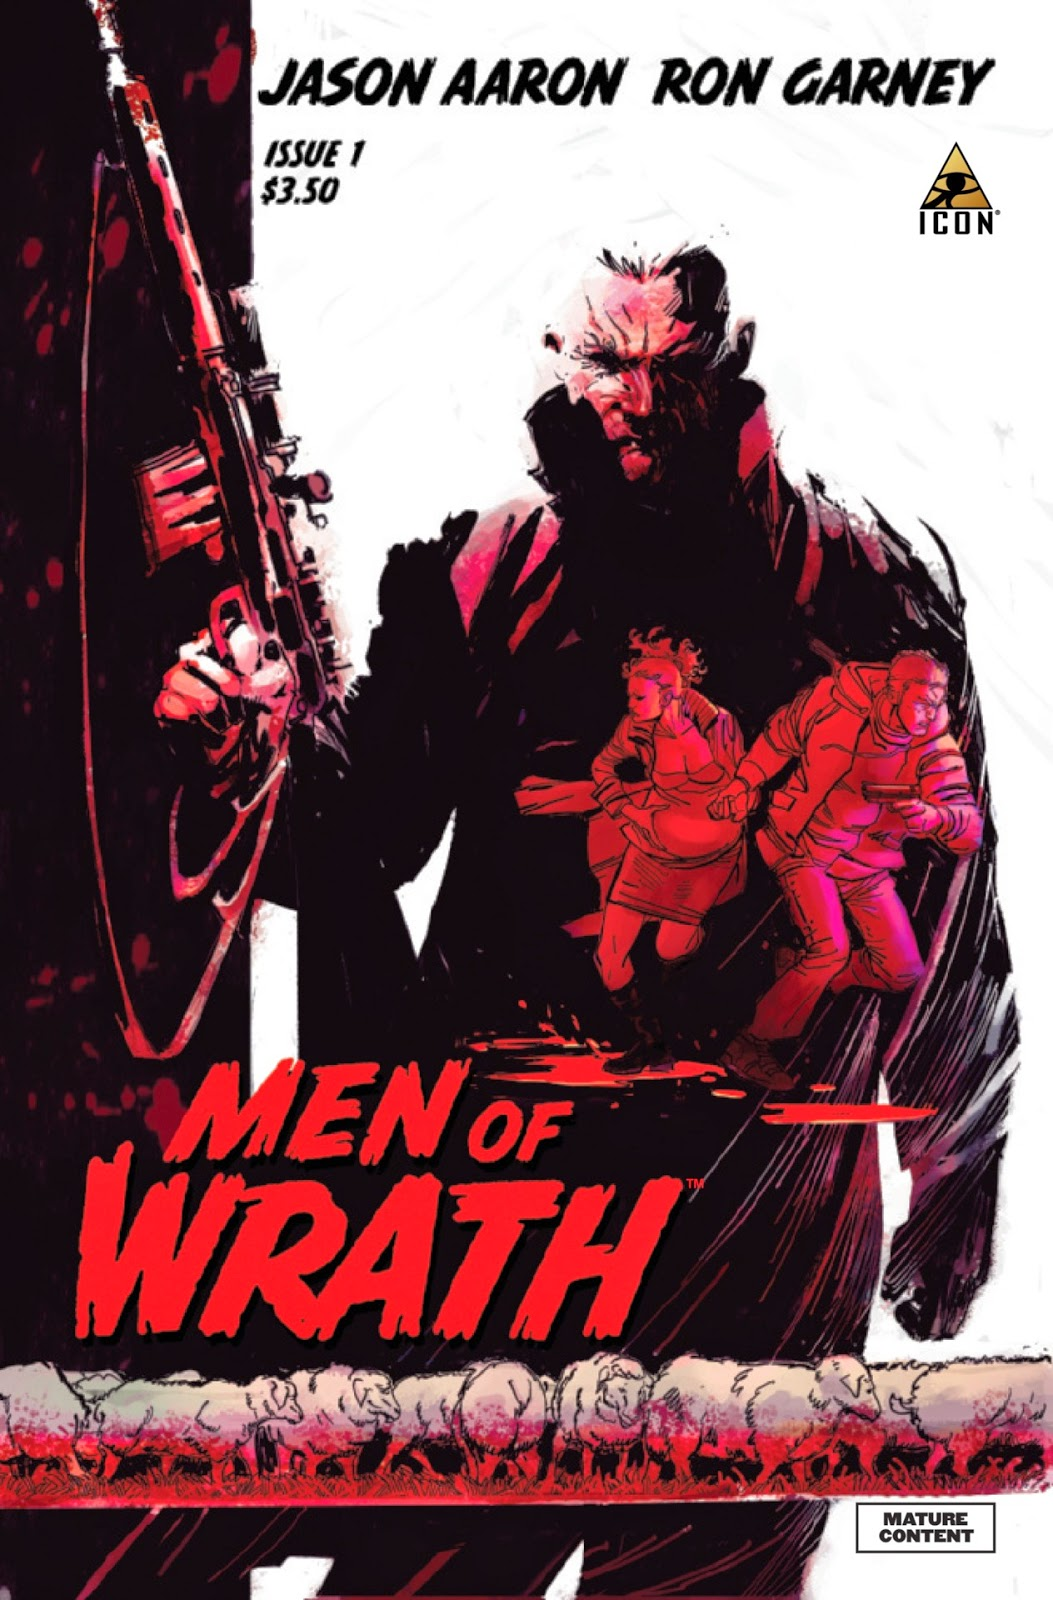 Men of Wrath 1 by Aaron and Garney standard cover